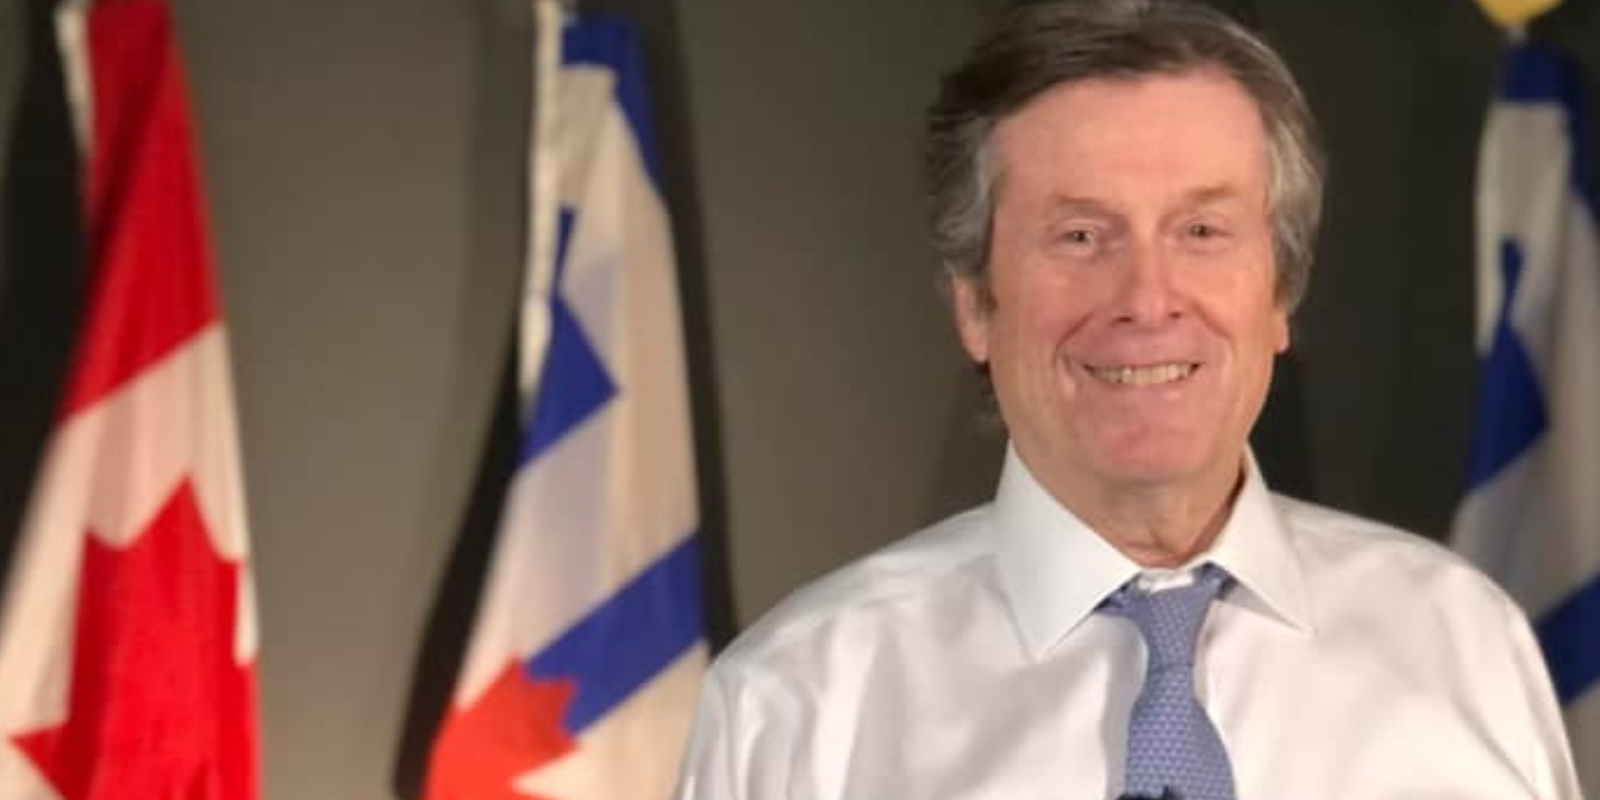 Toronto mayor says salons, barbershops will not reopen if cases continue to rise